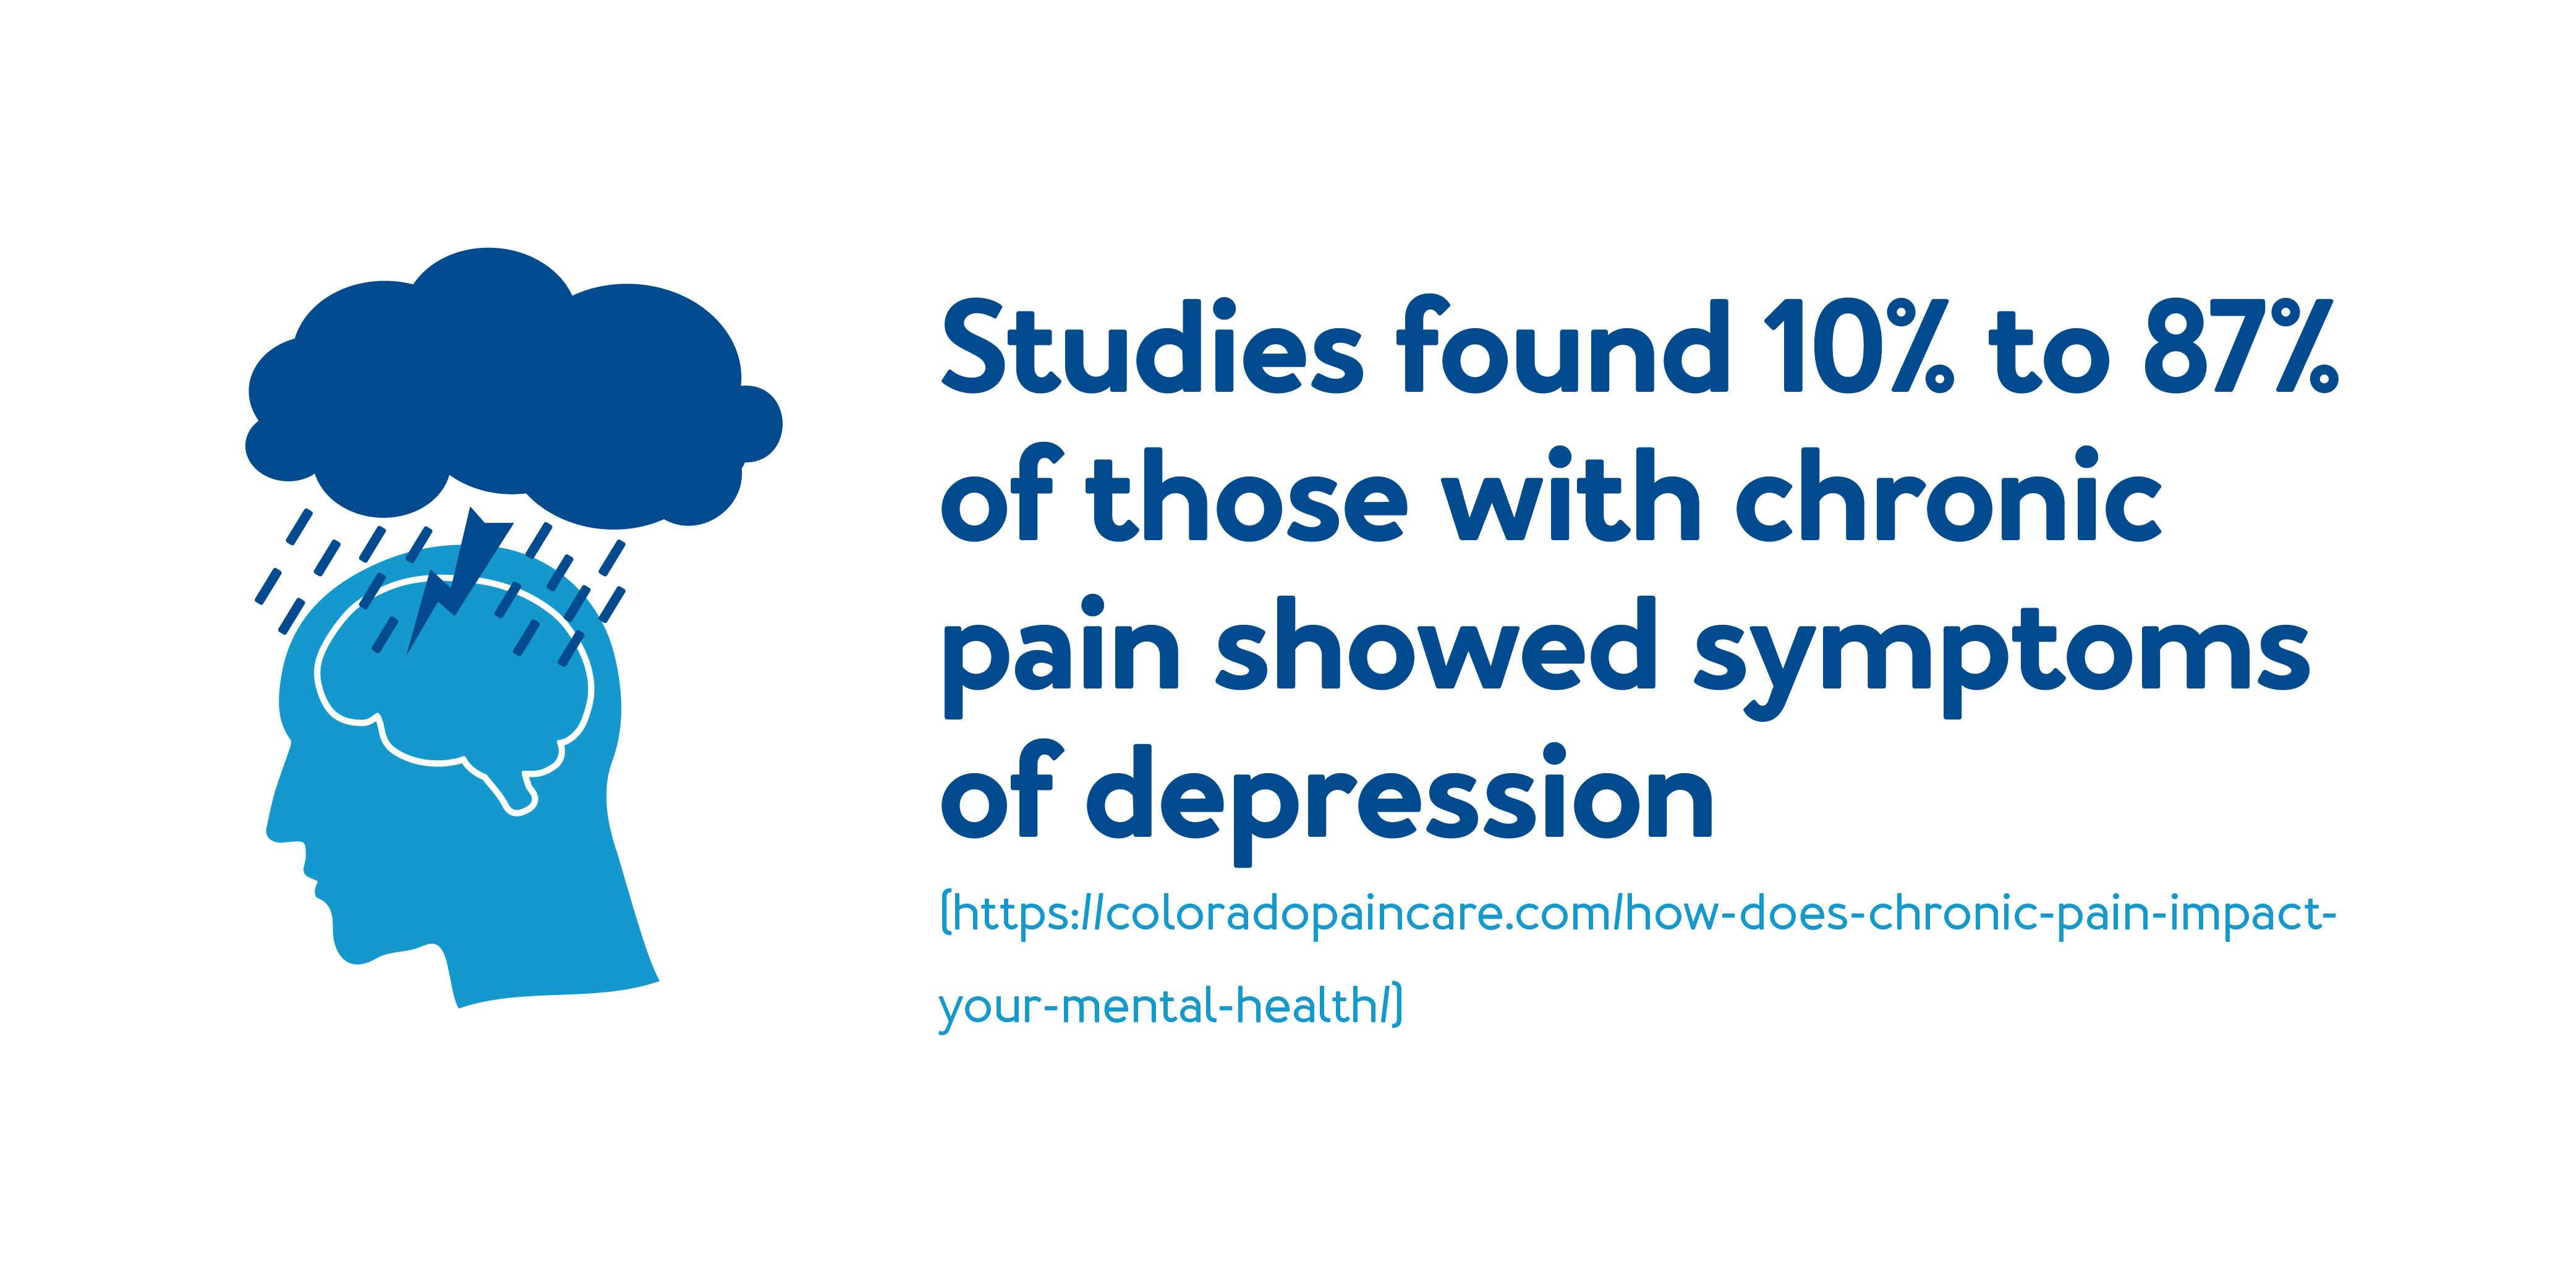 Studies found 10% to 87% of those with chronic pain showed symptoms of depression.